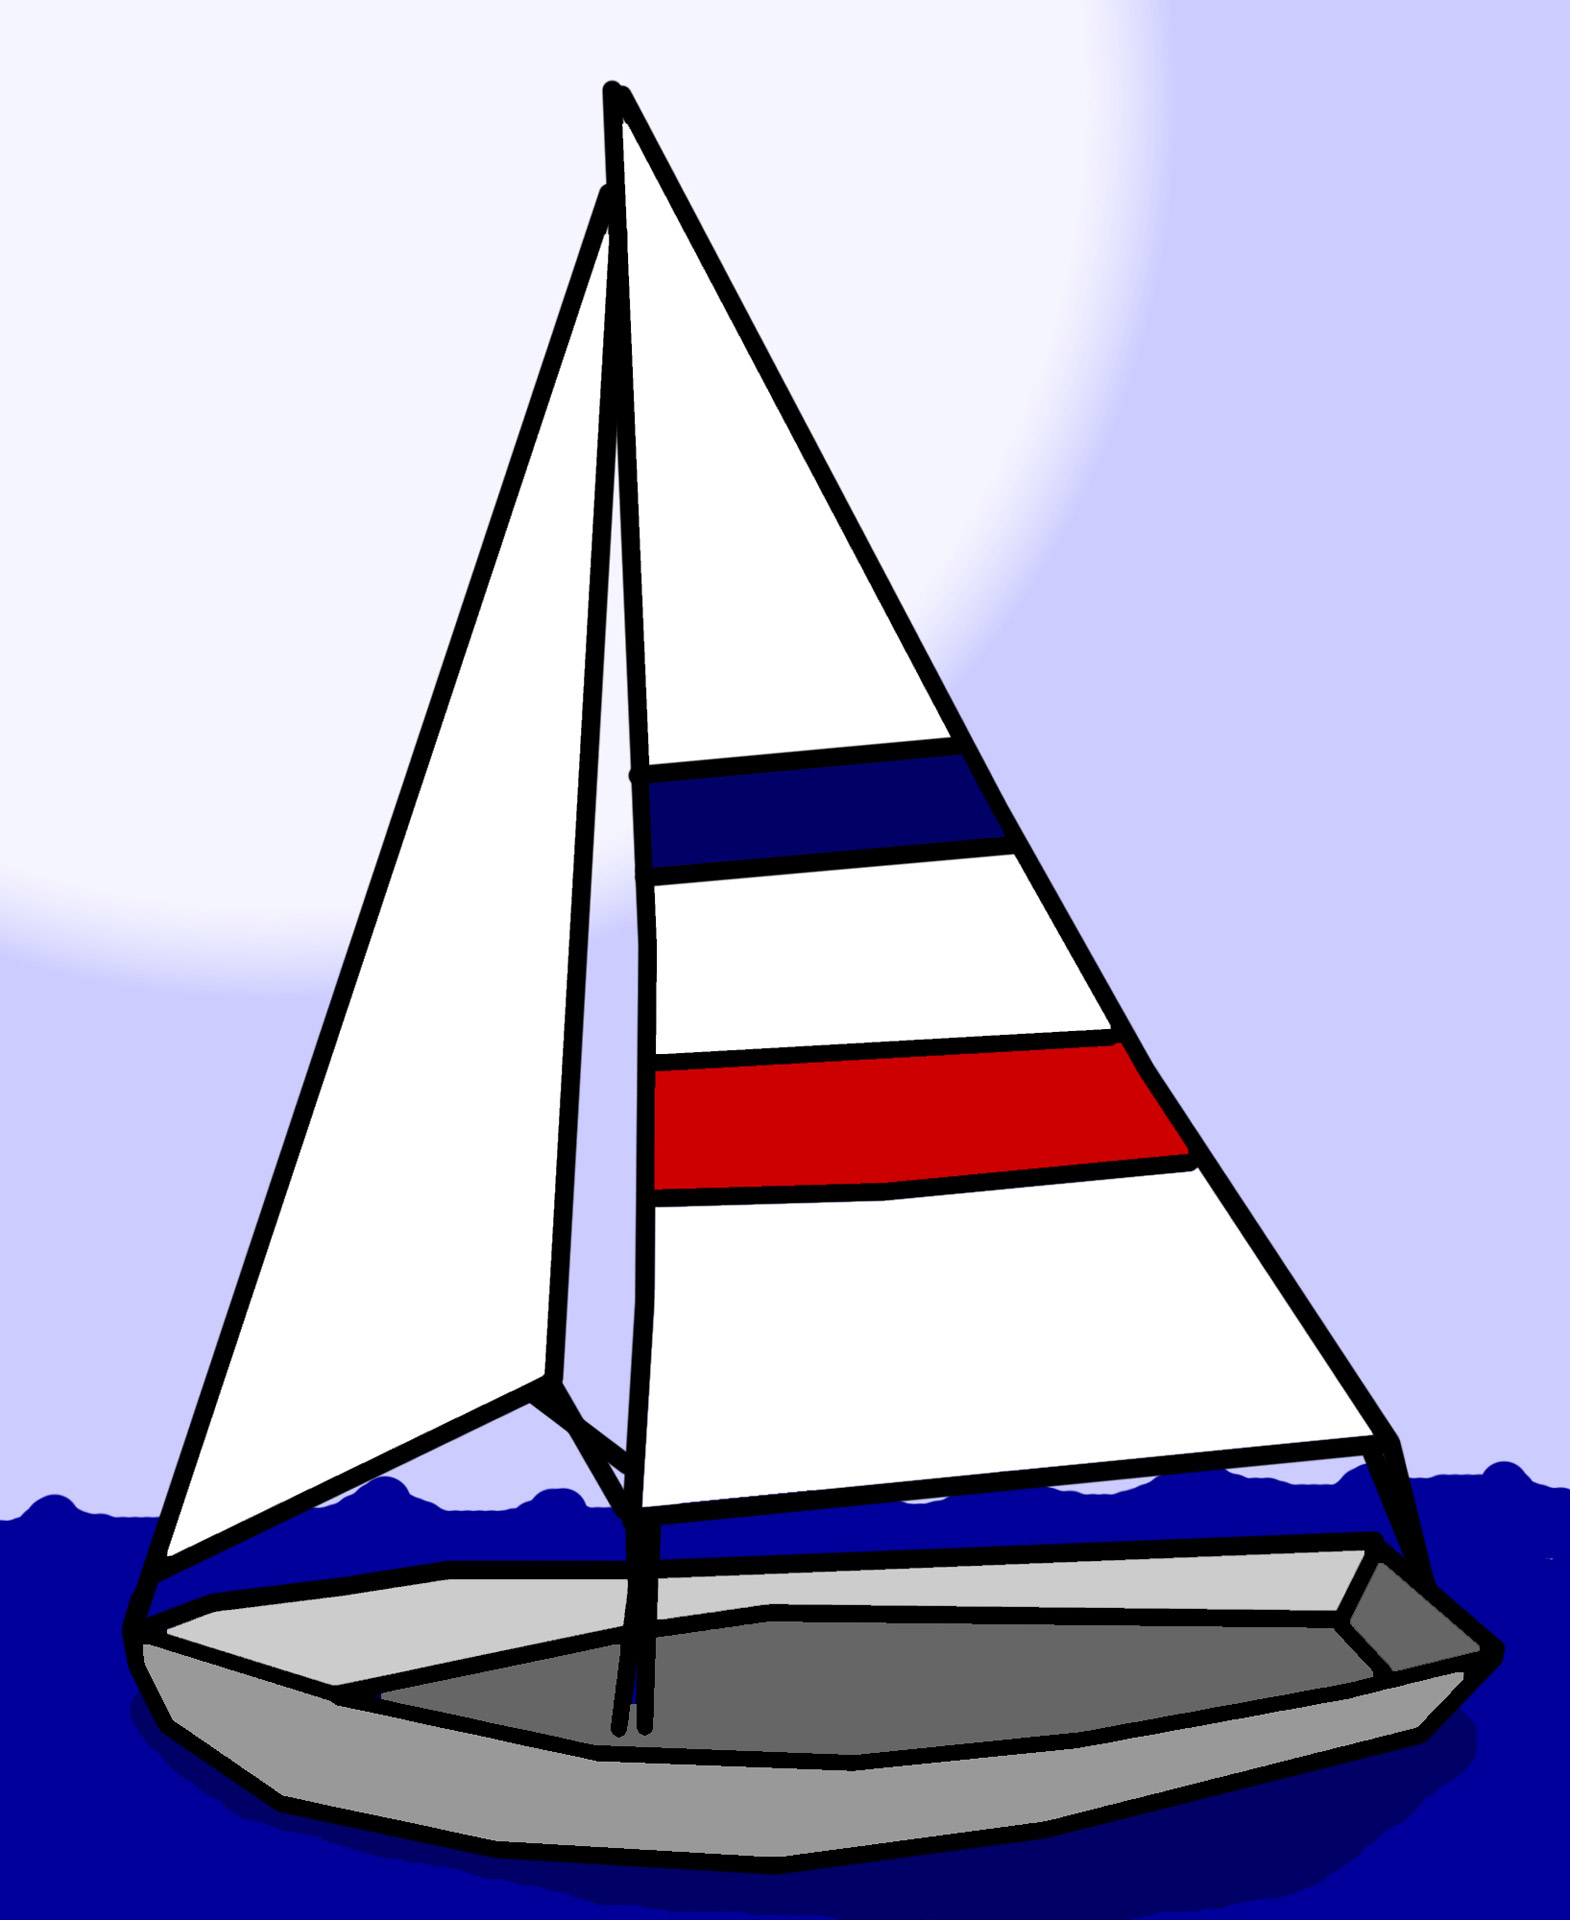 Sailboat clipart two Clipart clipartix domain boat free